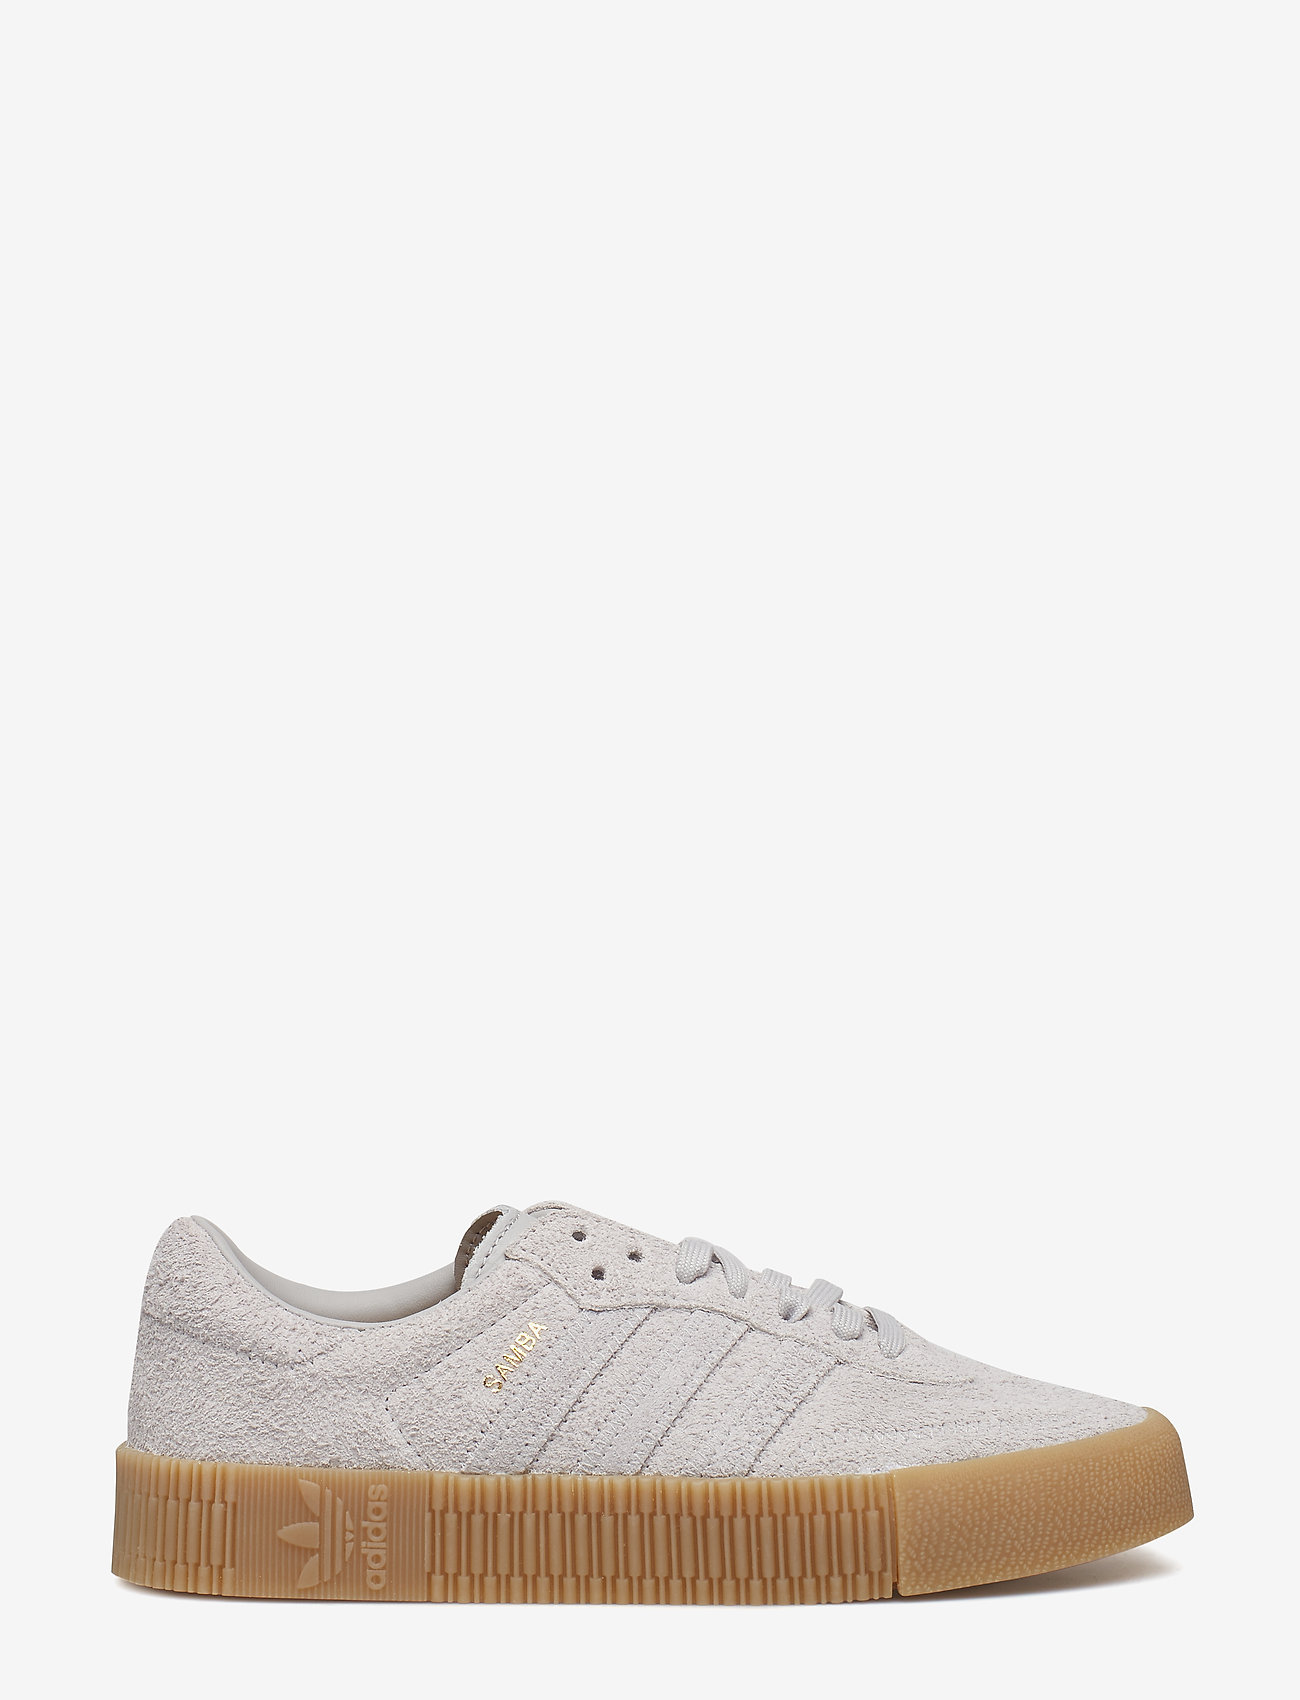 adidas Originals - SAMBAROSE W - low top sneakers - gretwo/gretwo/gum4